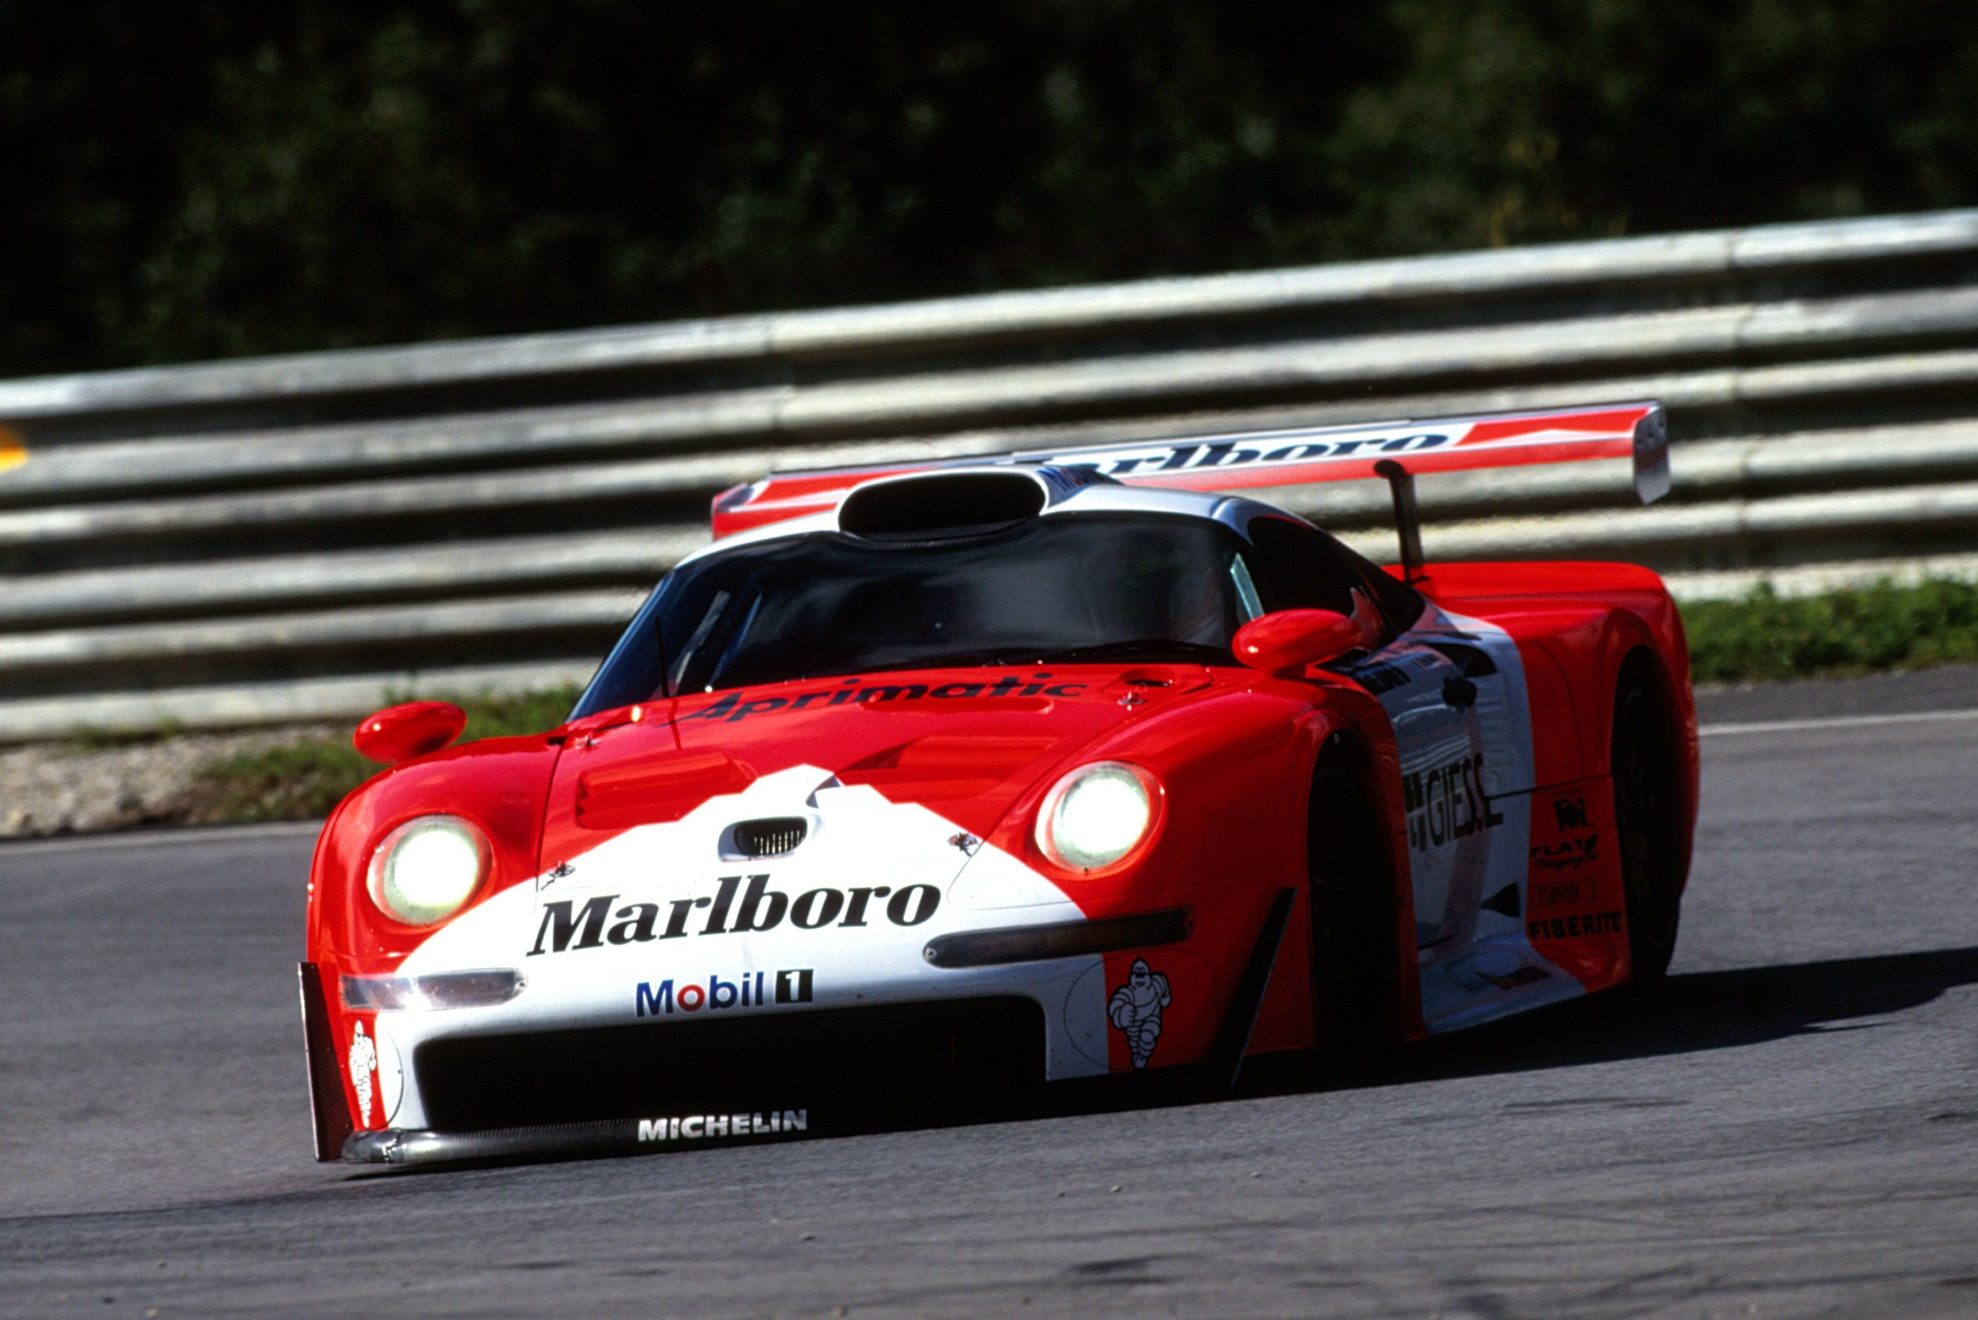 The arrival of Mercedes moved the goalposts in the FIA GT championship, and Porsche failed to win a race in 1997-98